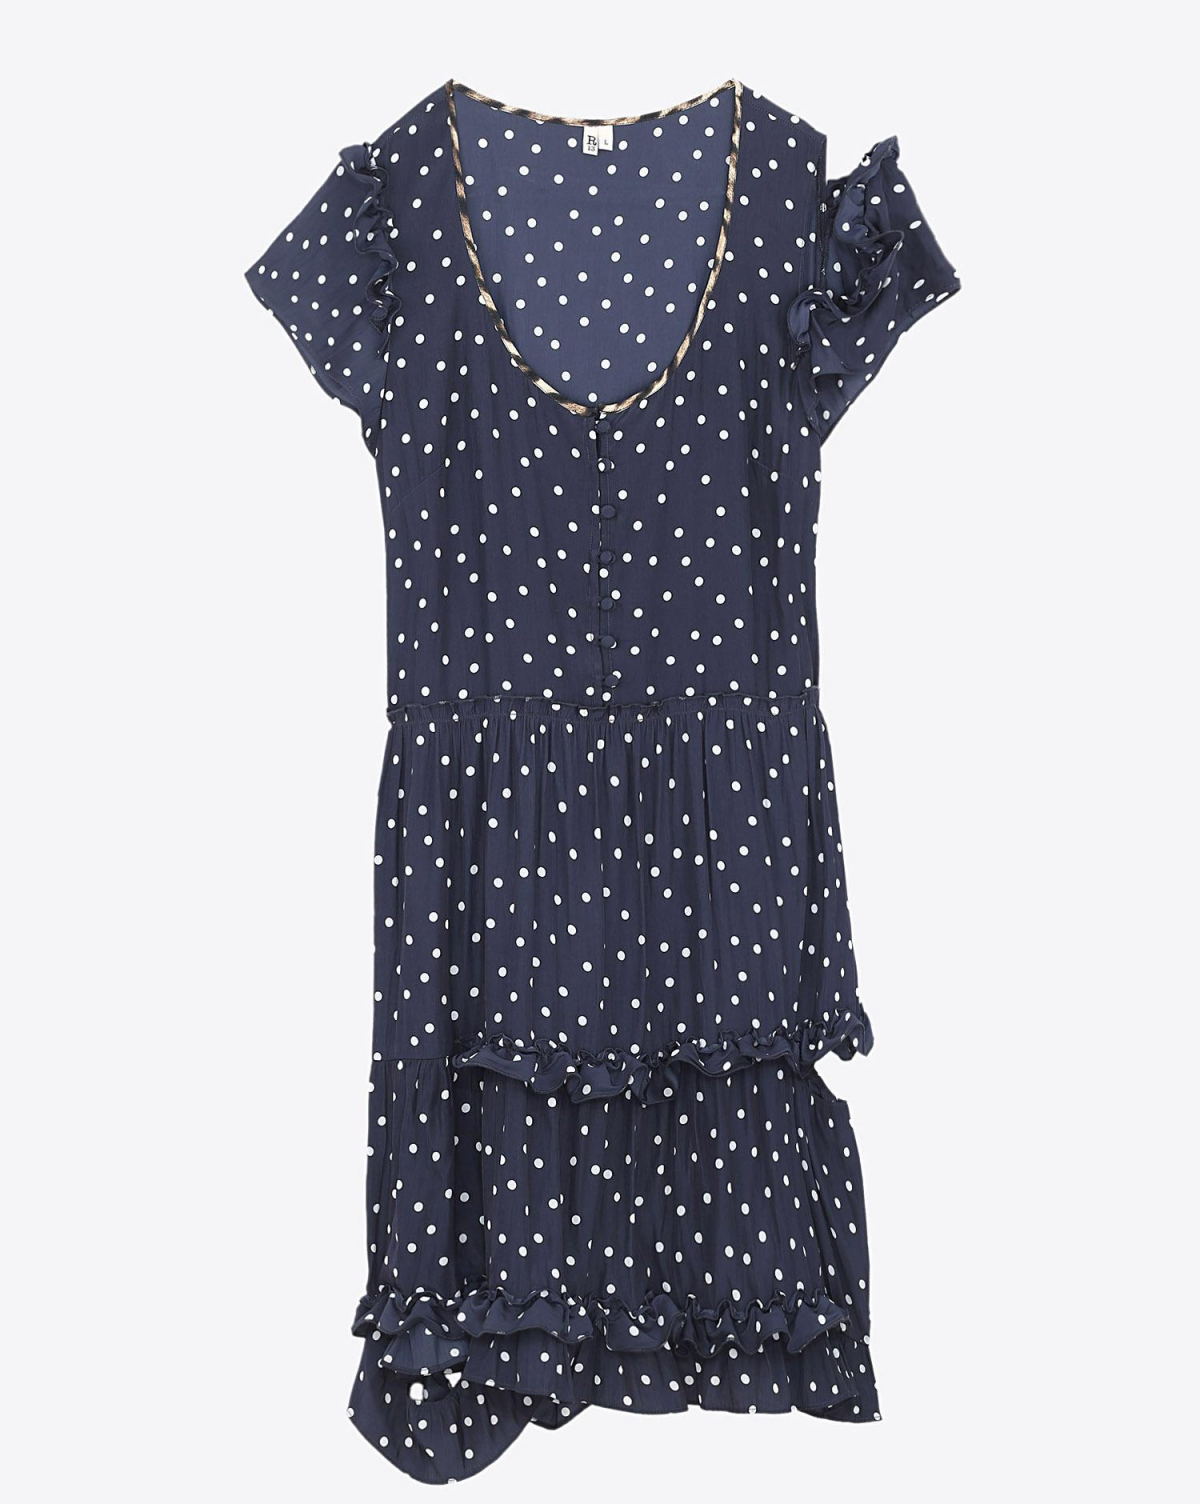 R13 Denim Collection Deconstructed Babydoll - Polka Dot